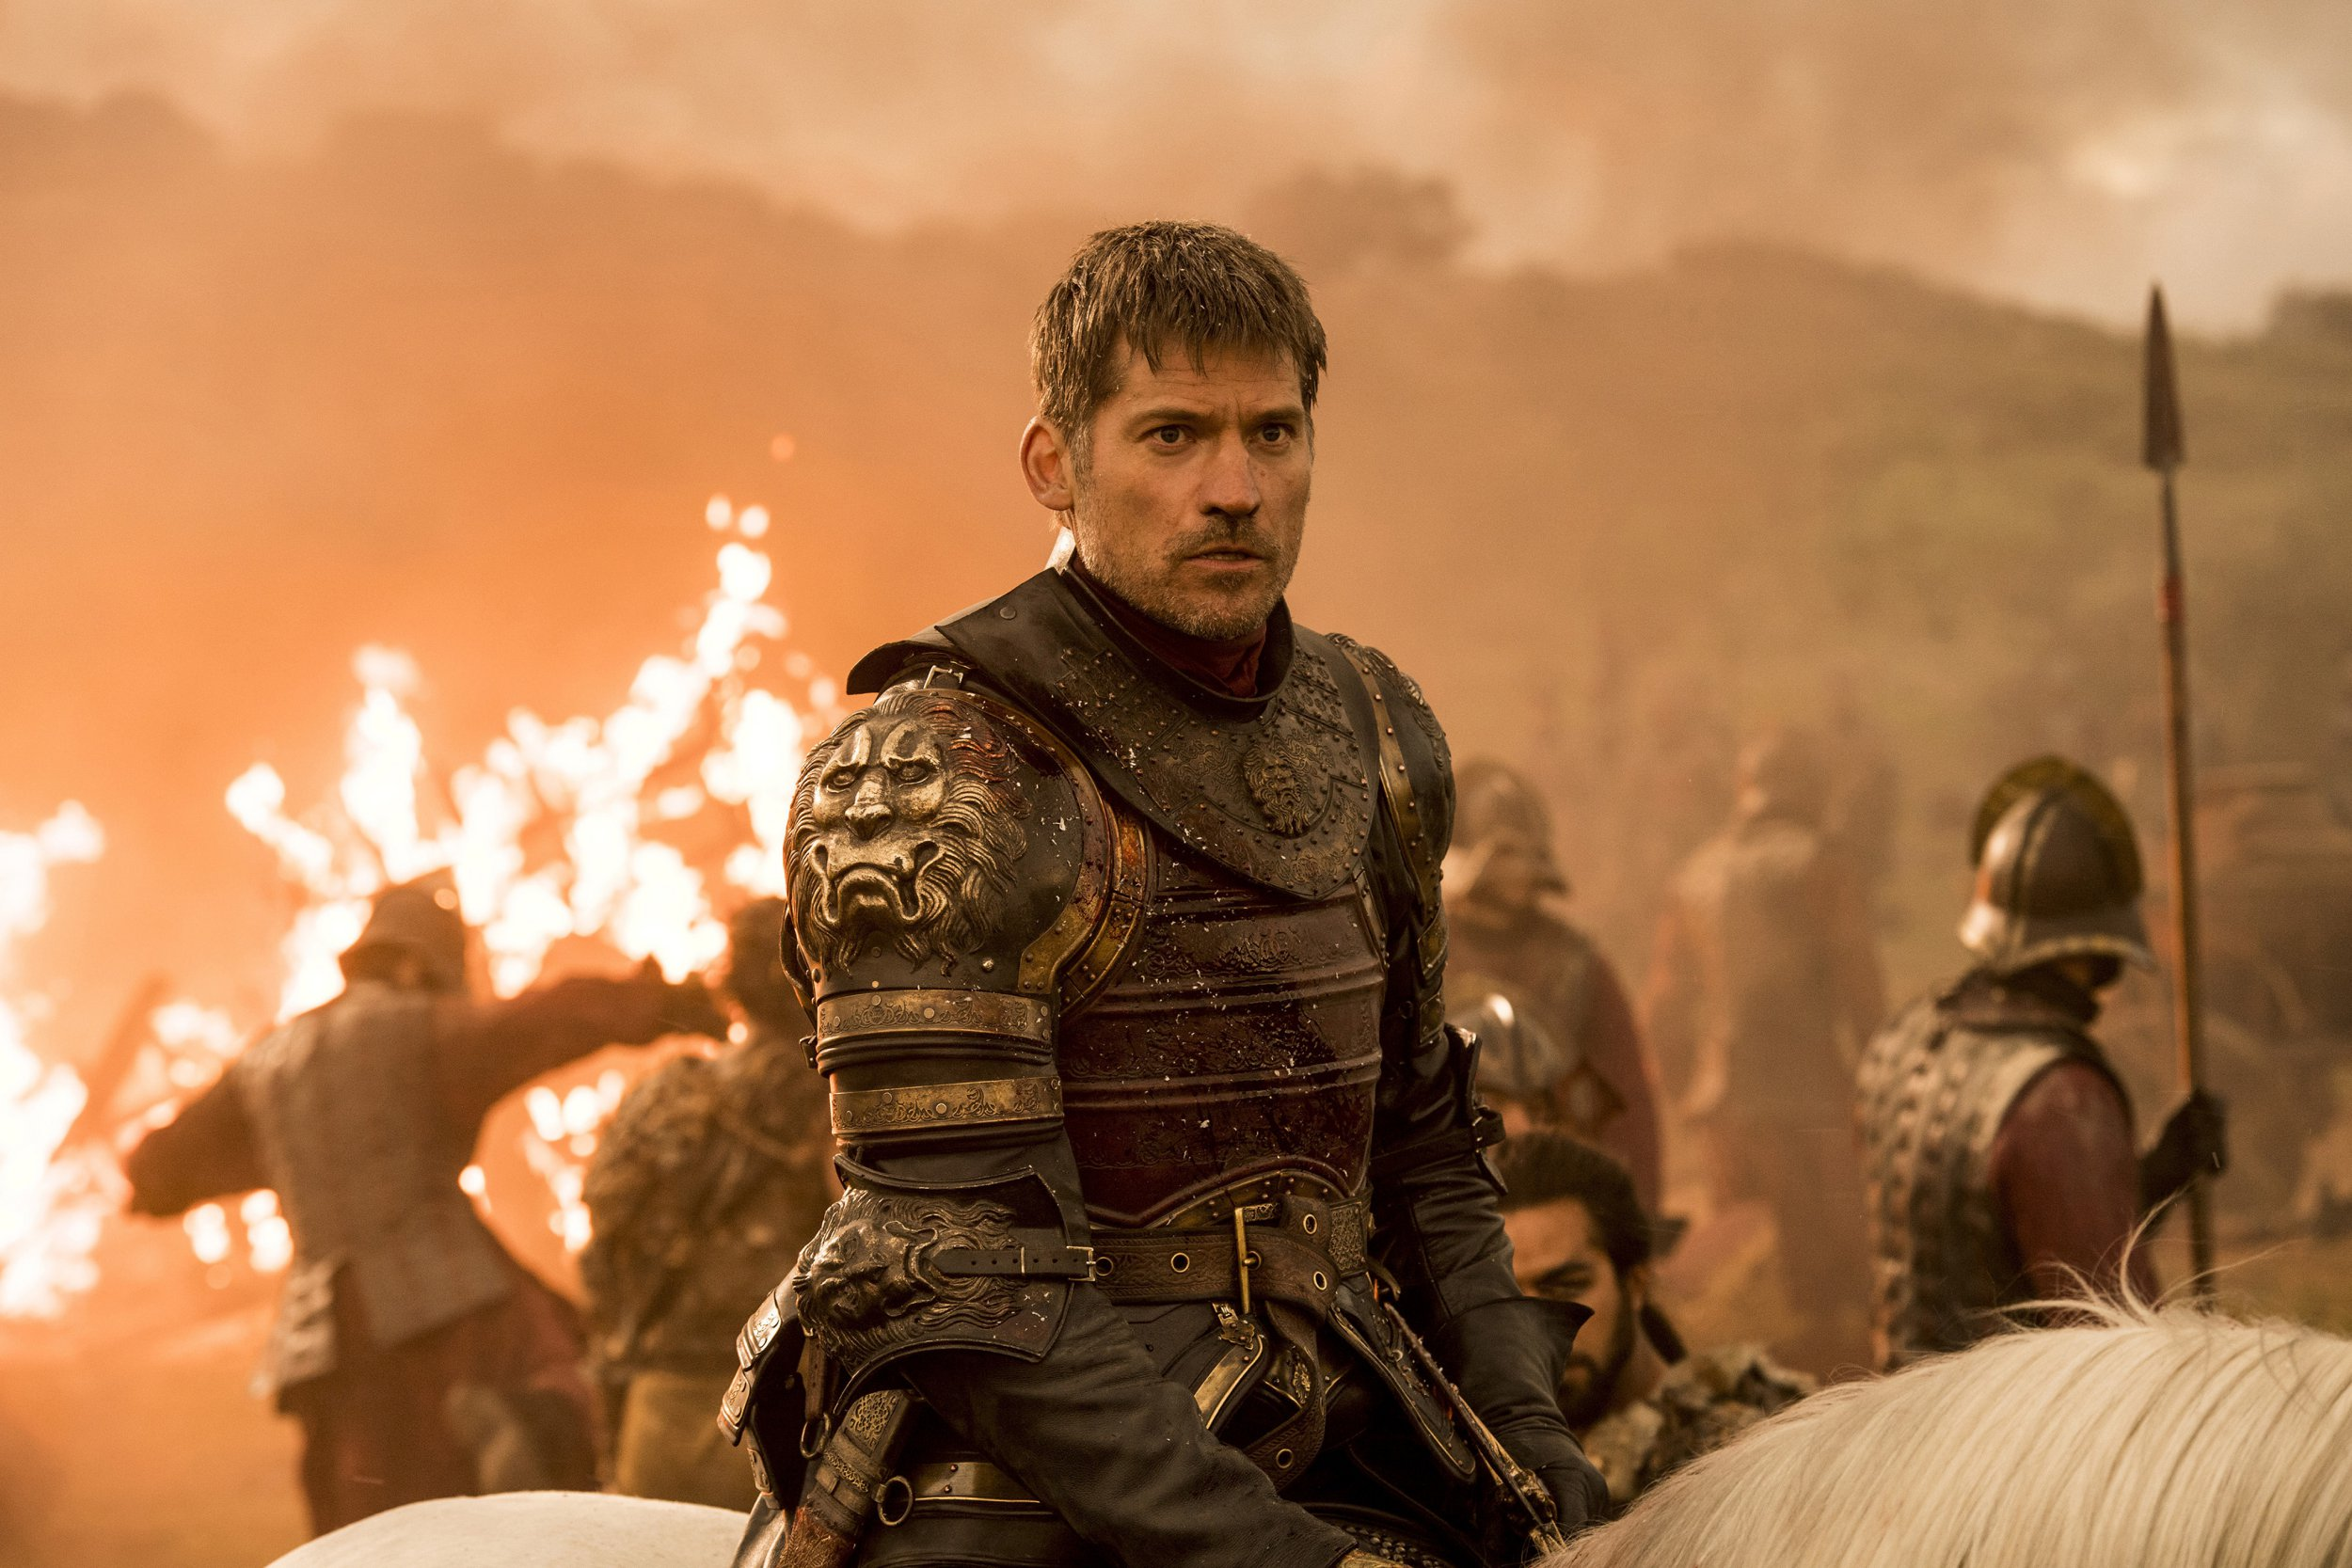 Game Of Thrones theory suggests Jaime Lannister will come full circle with Bran Stark